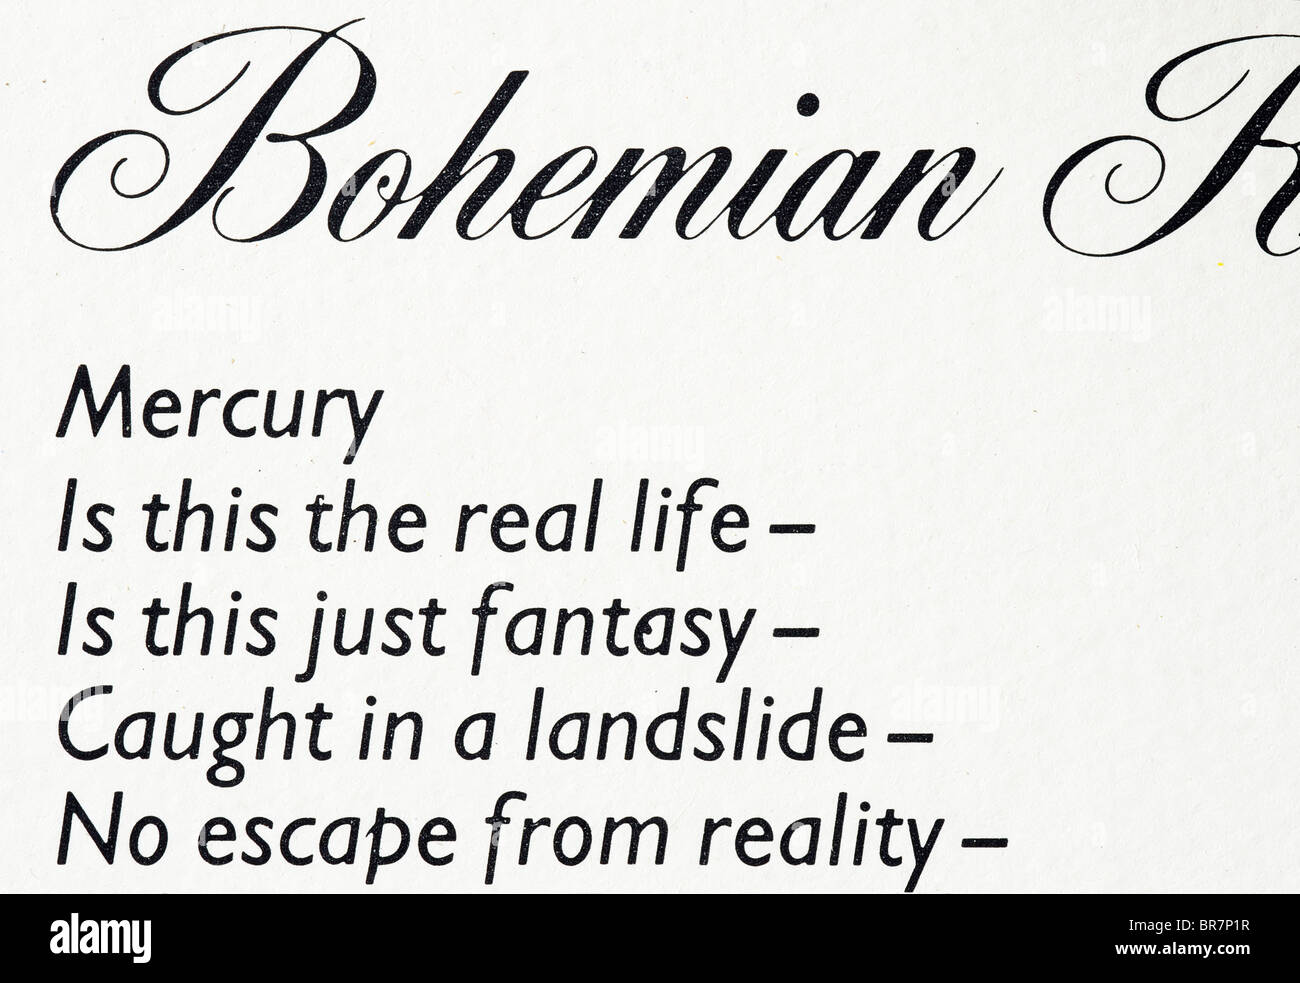 bohemian rhapsody lyrics meaning Bohemian rhapsody lyrics  song information artist: queen album: night at the opera lyrics is this the real life is this just fantasy caught in a landslide no escape from reality.